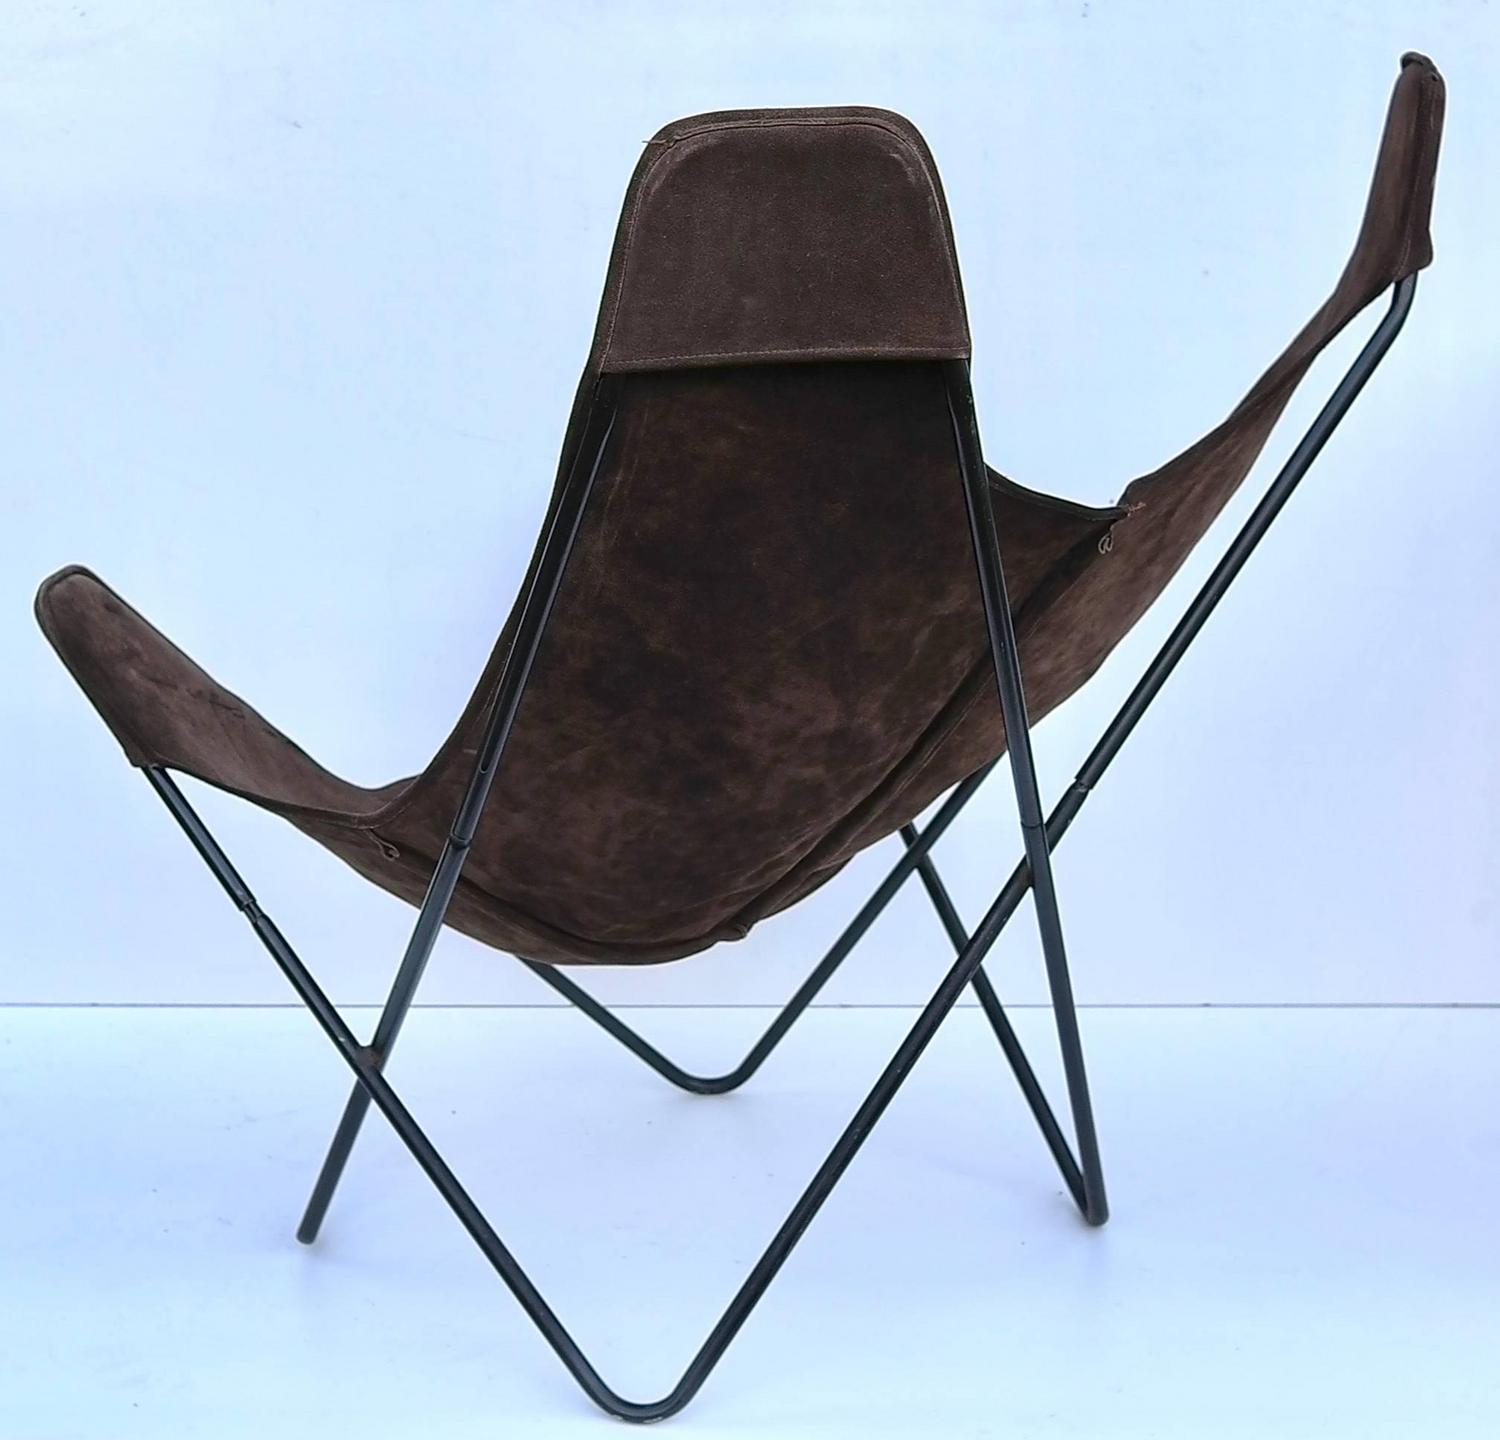 knoll butterfly chair by jorge ferrari hardoy in suede leather for sale at 1stdibs. Black Bedroom Furniture Sets. Home Design Ideas